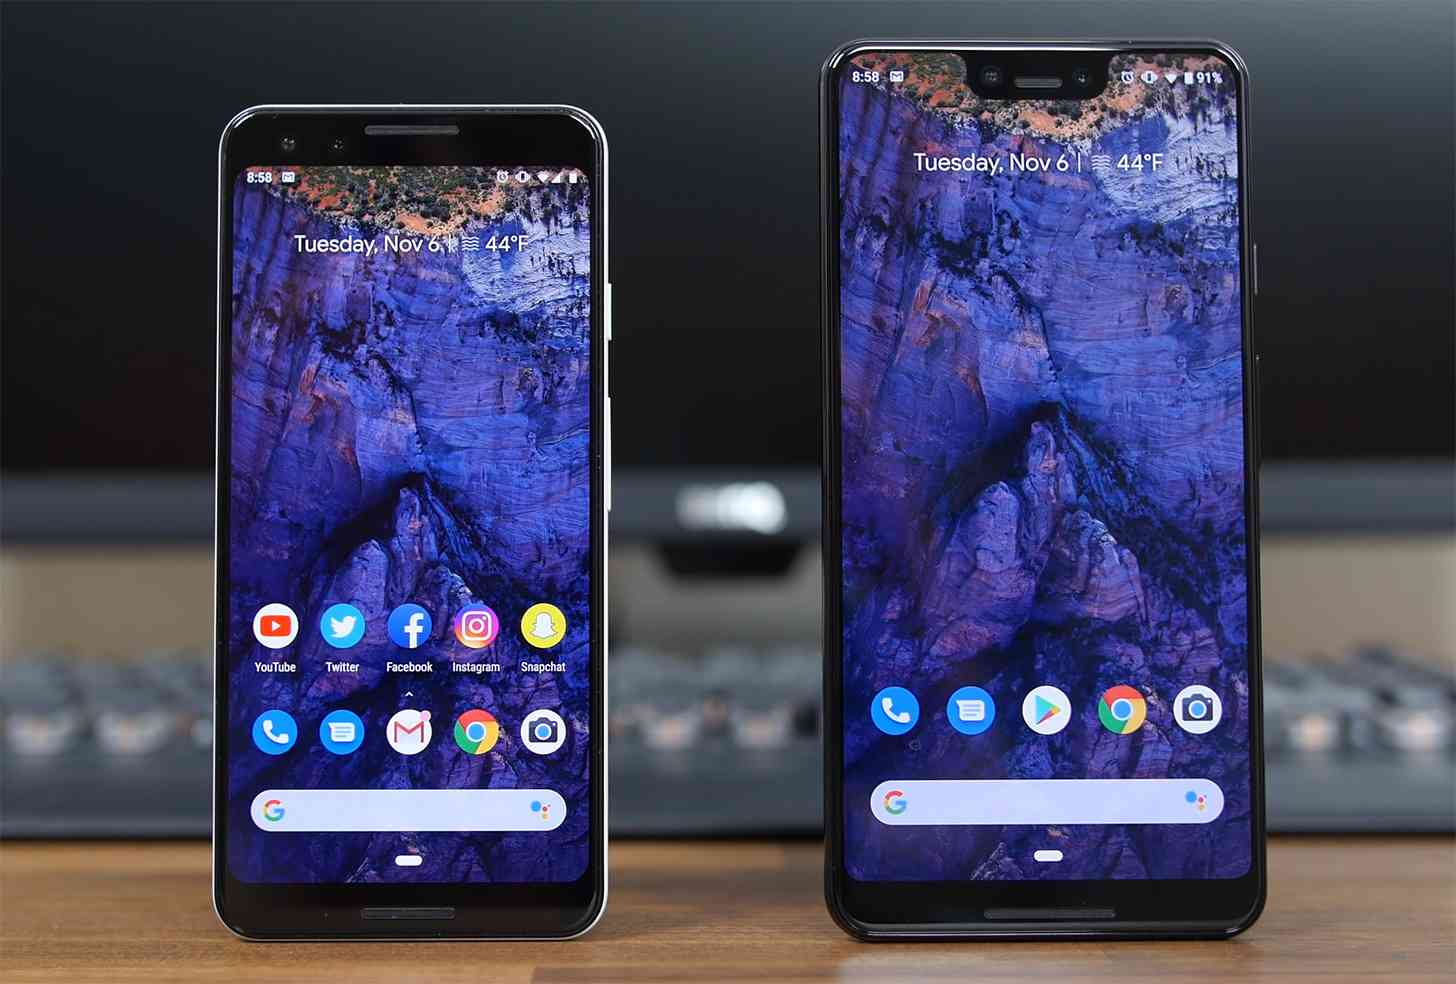 Google's March 2019 Android security updates official, Pixel